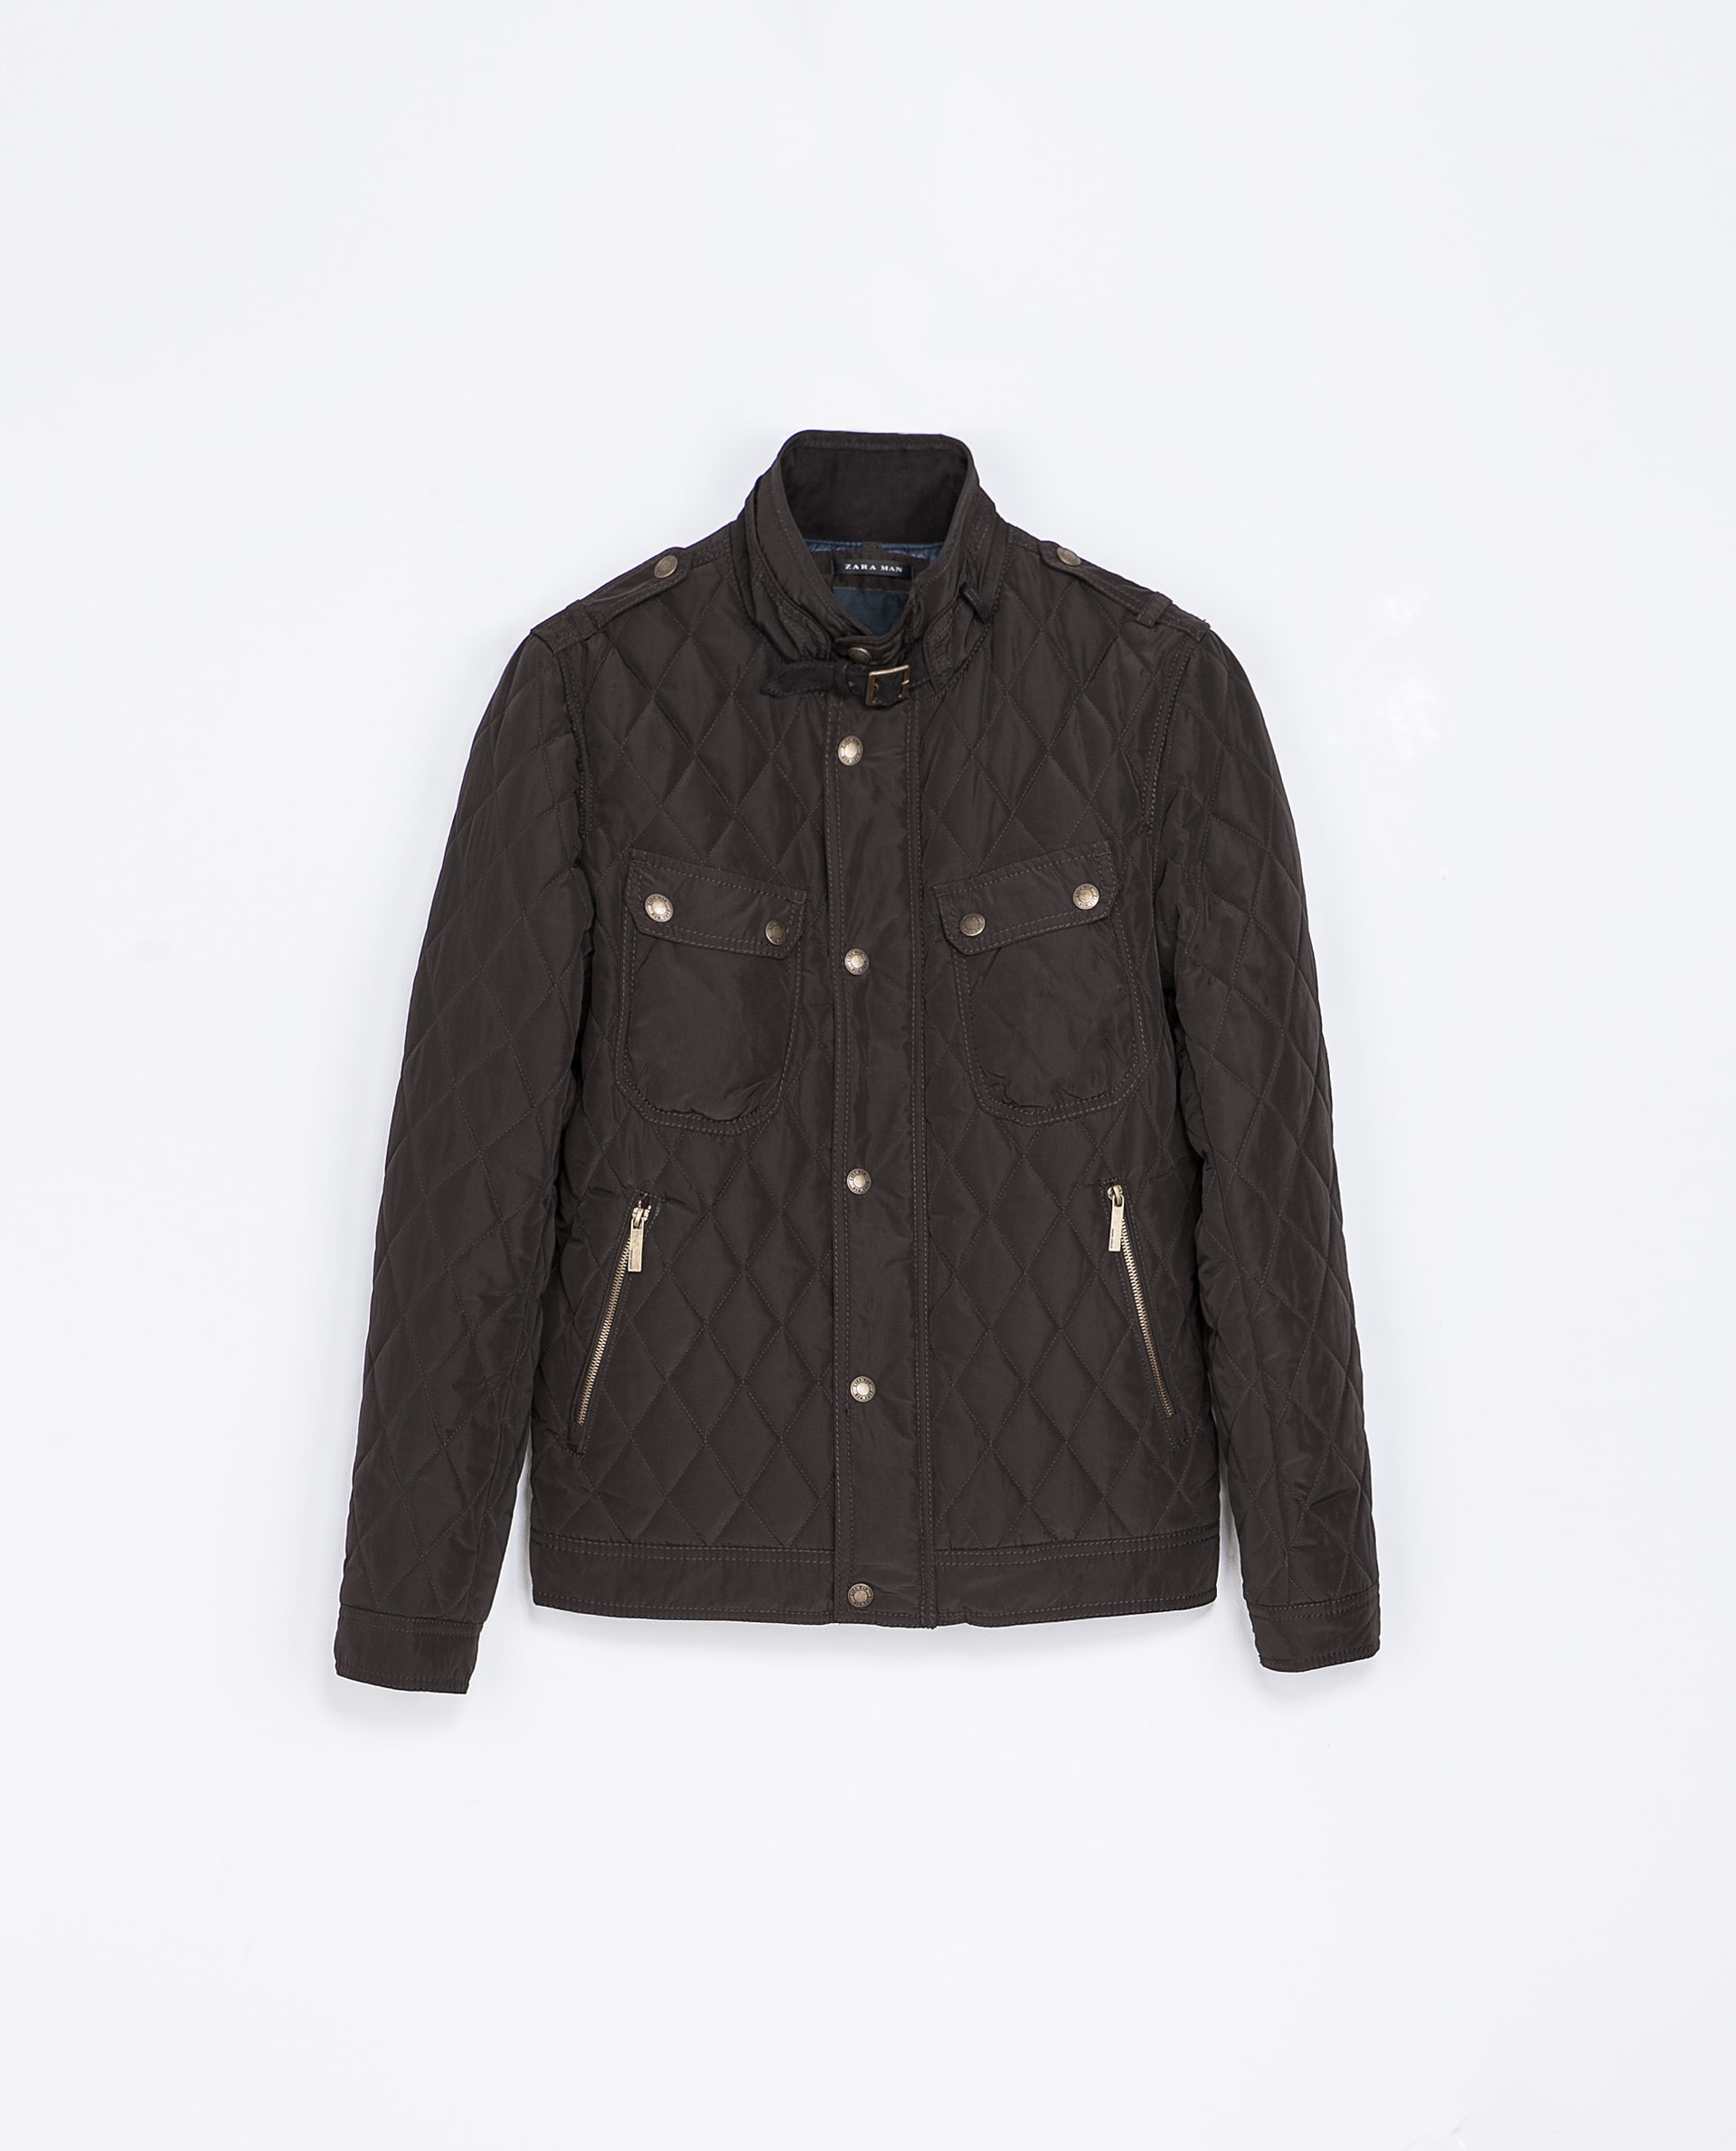 Zara Quilted Jacket With Angled Pockets In Brown For Men